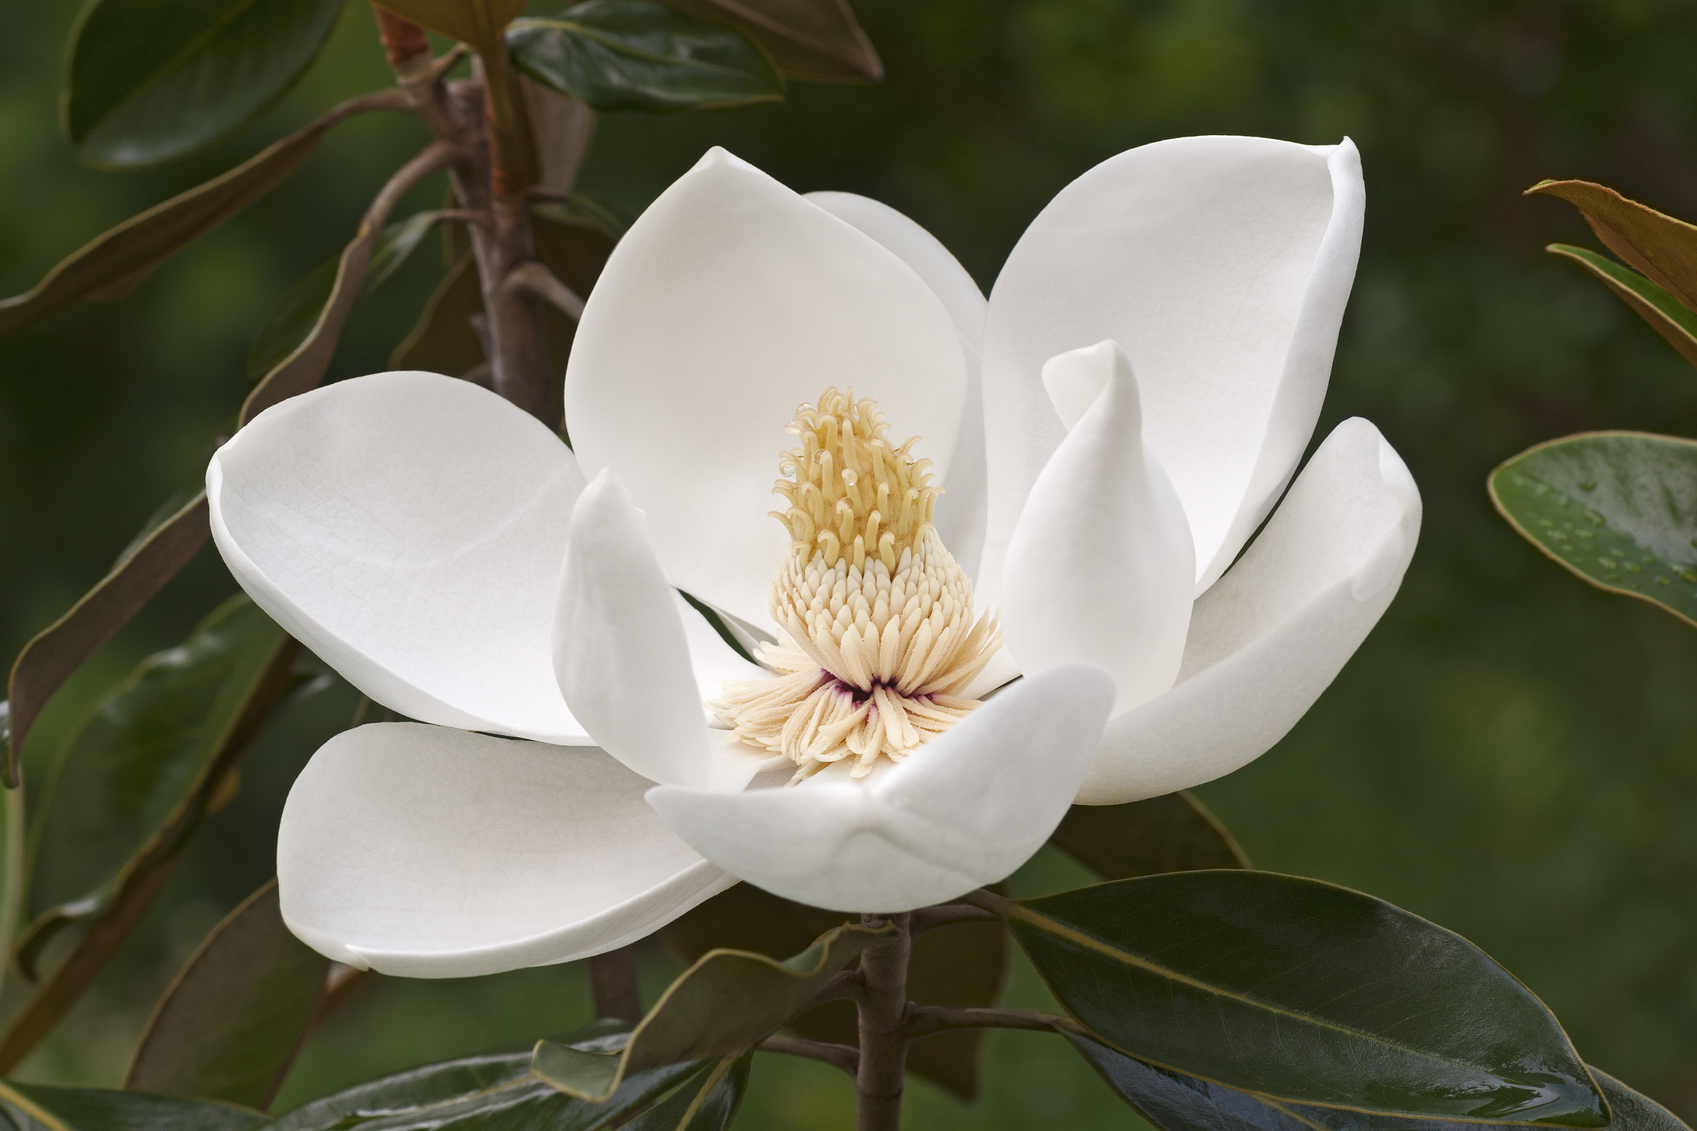 High Resolution Wallpaper | Magnolia 1697x1131 px